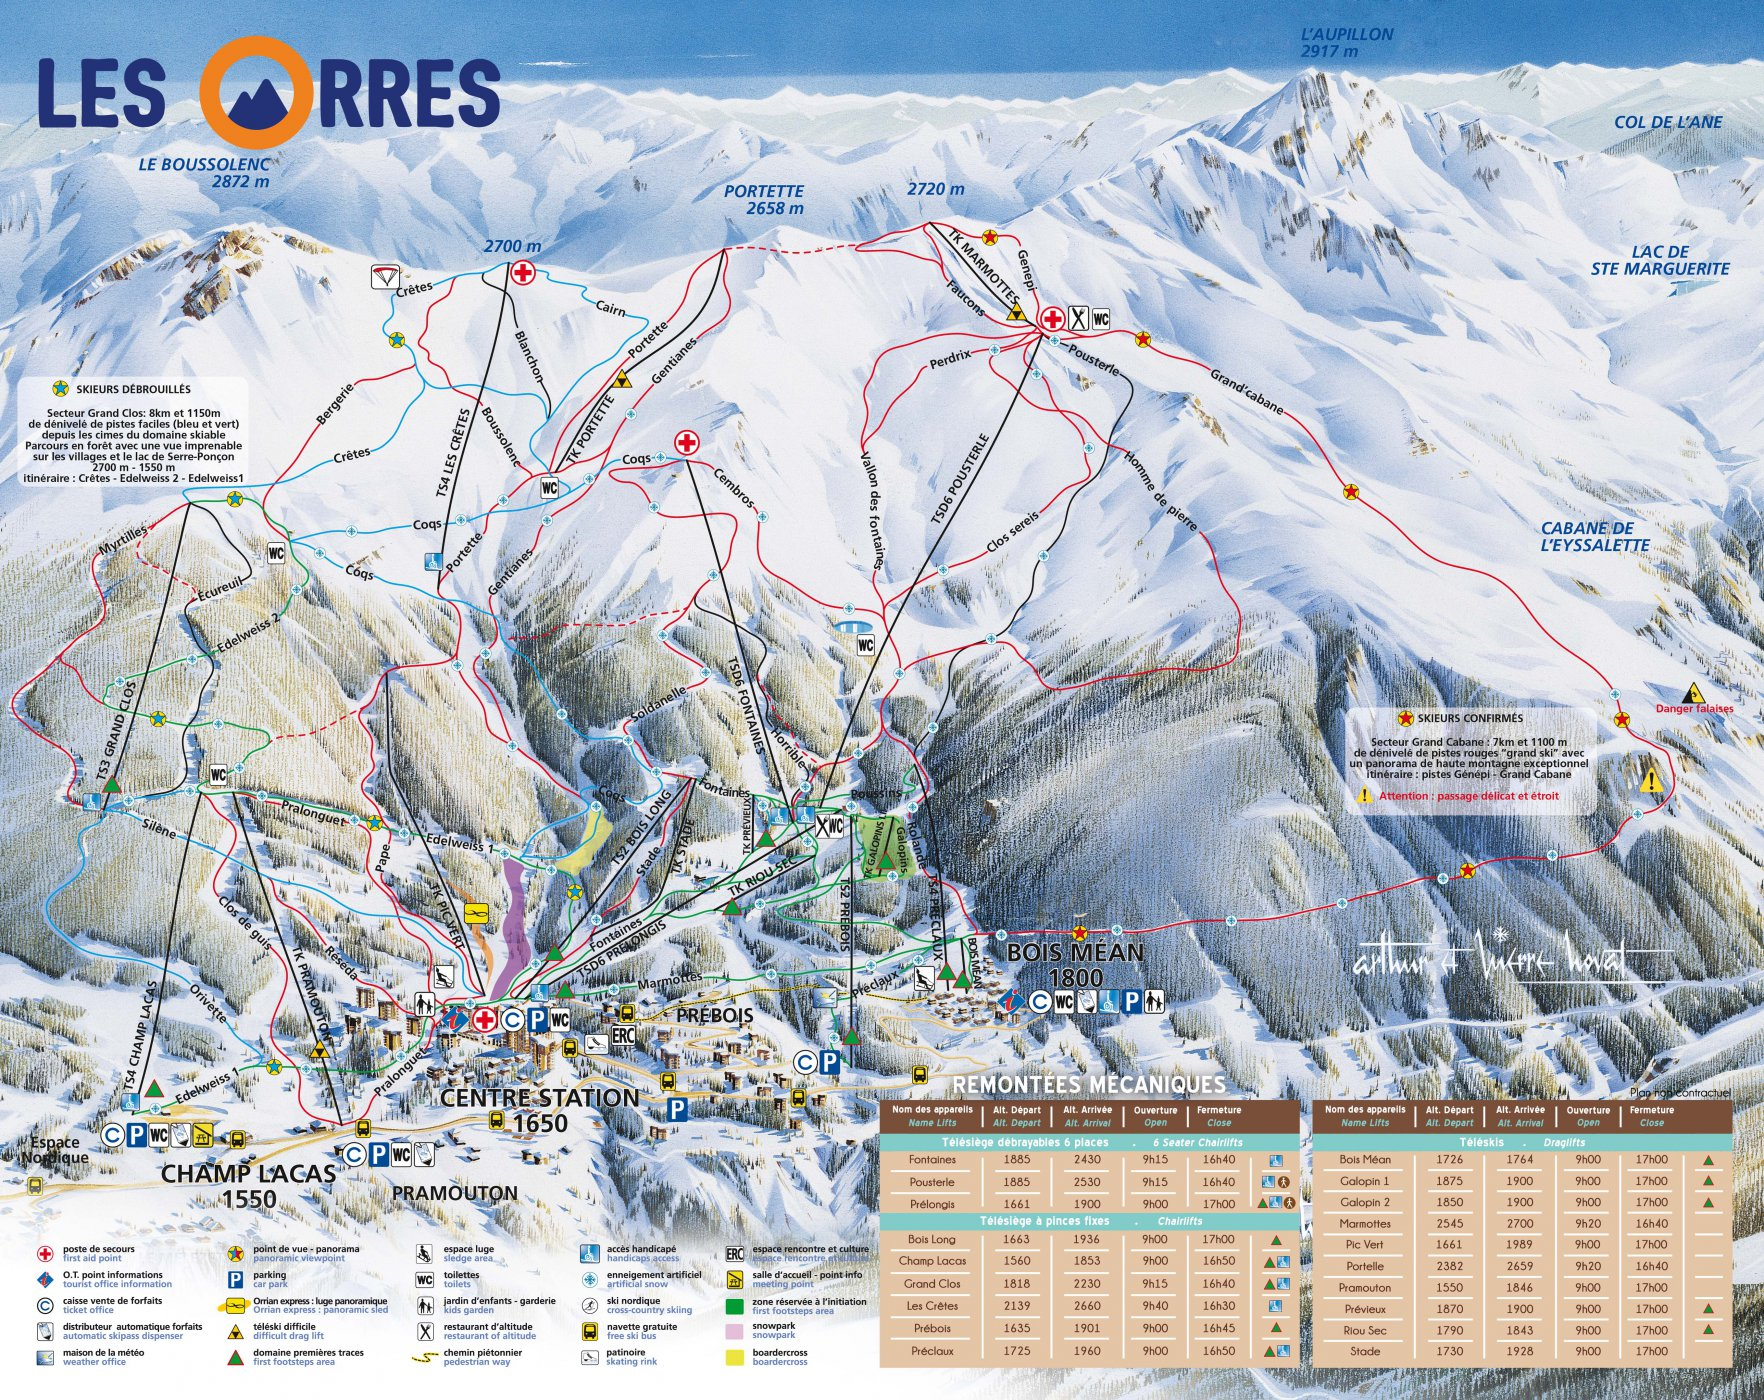 map of et hotels with Le Domaine Skiable on Carte plan Syrie together with Vanille additionally Gr65h likewise Objet 2 as well Kalamata.